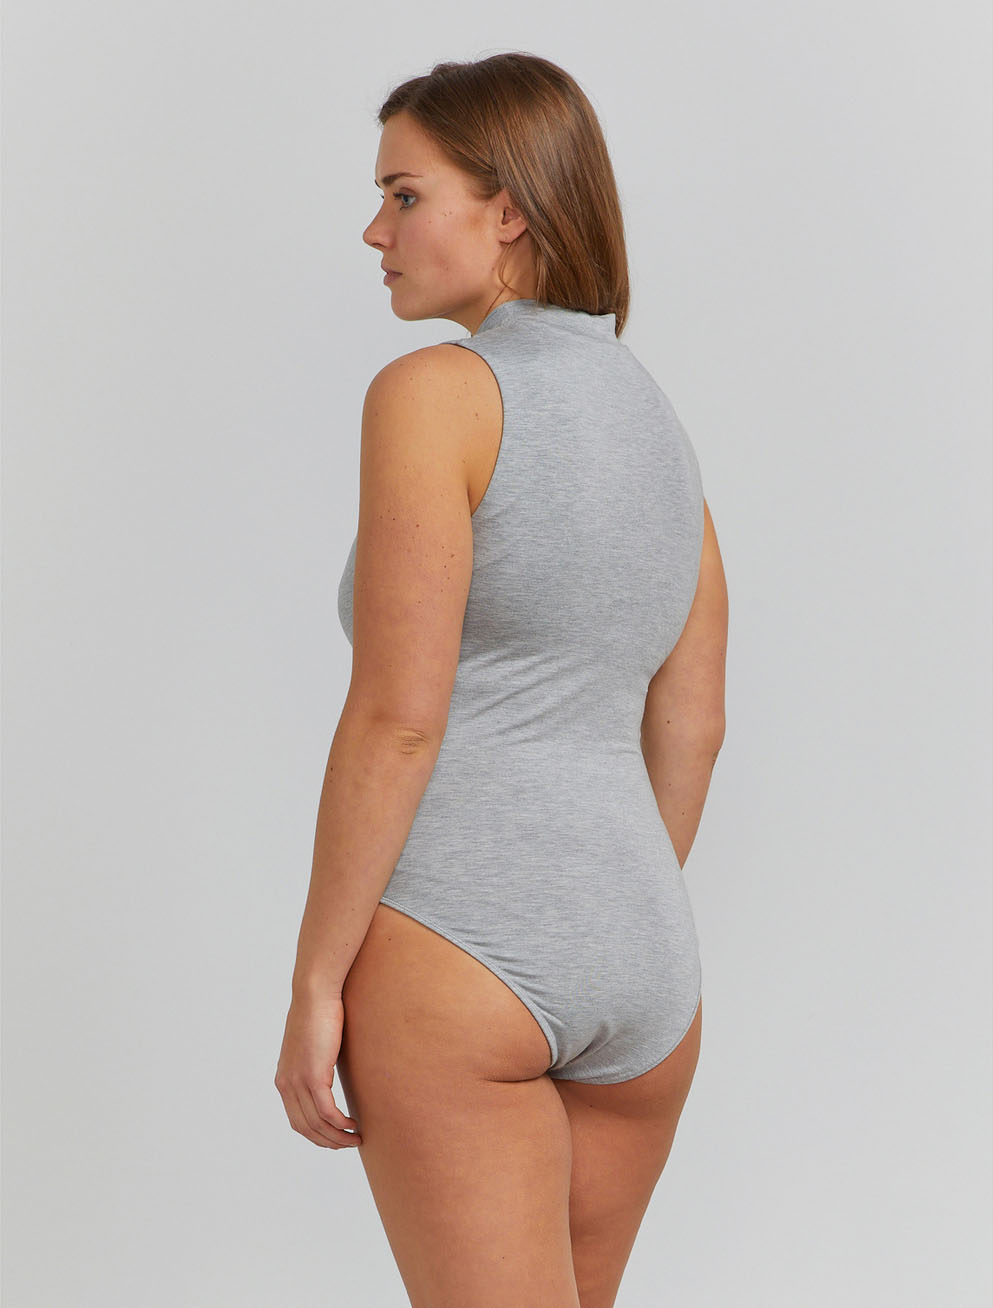 Rita turtleneck bodysuit